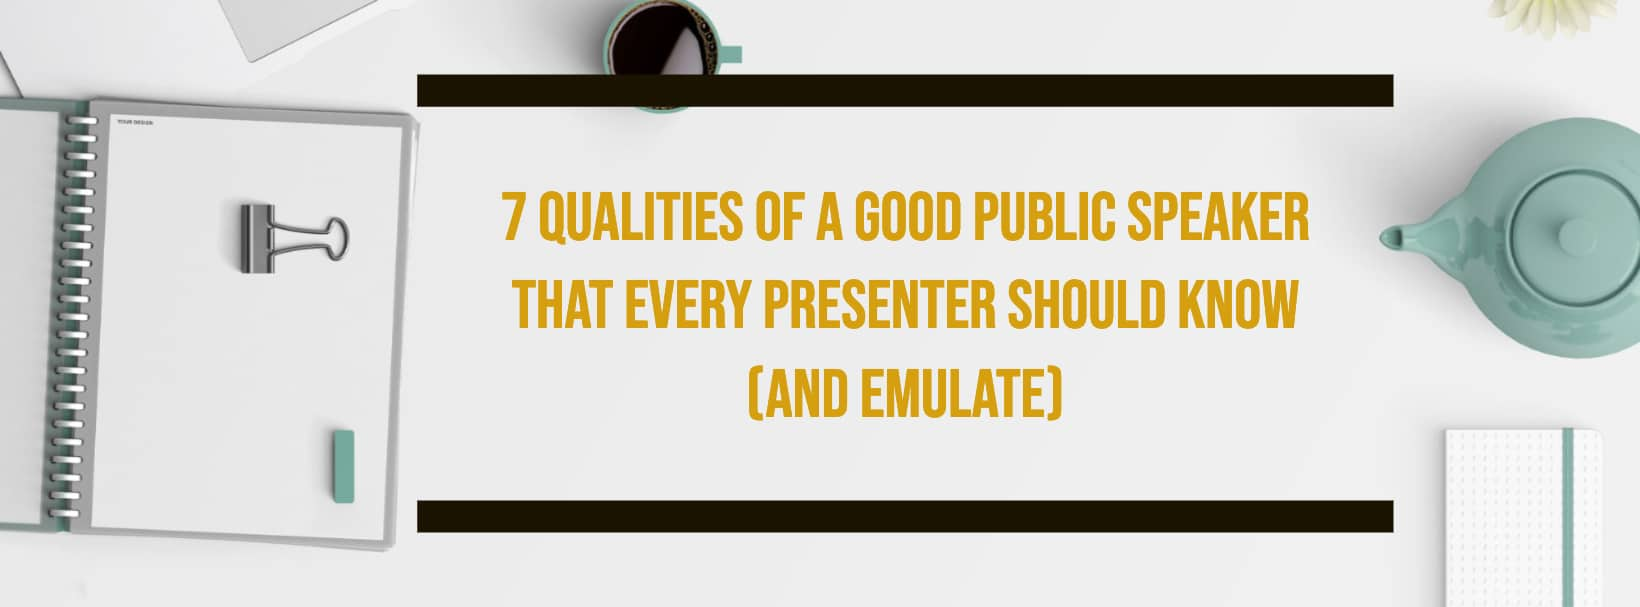 7-Qualities-of-a-Good-Public-Speaker-That-Every-Presenter-Should-Know-And-Emulate